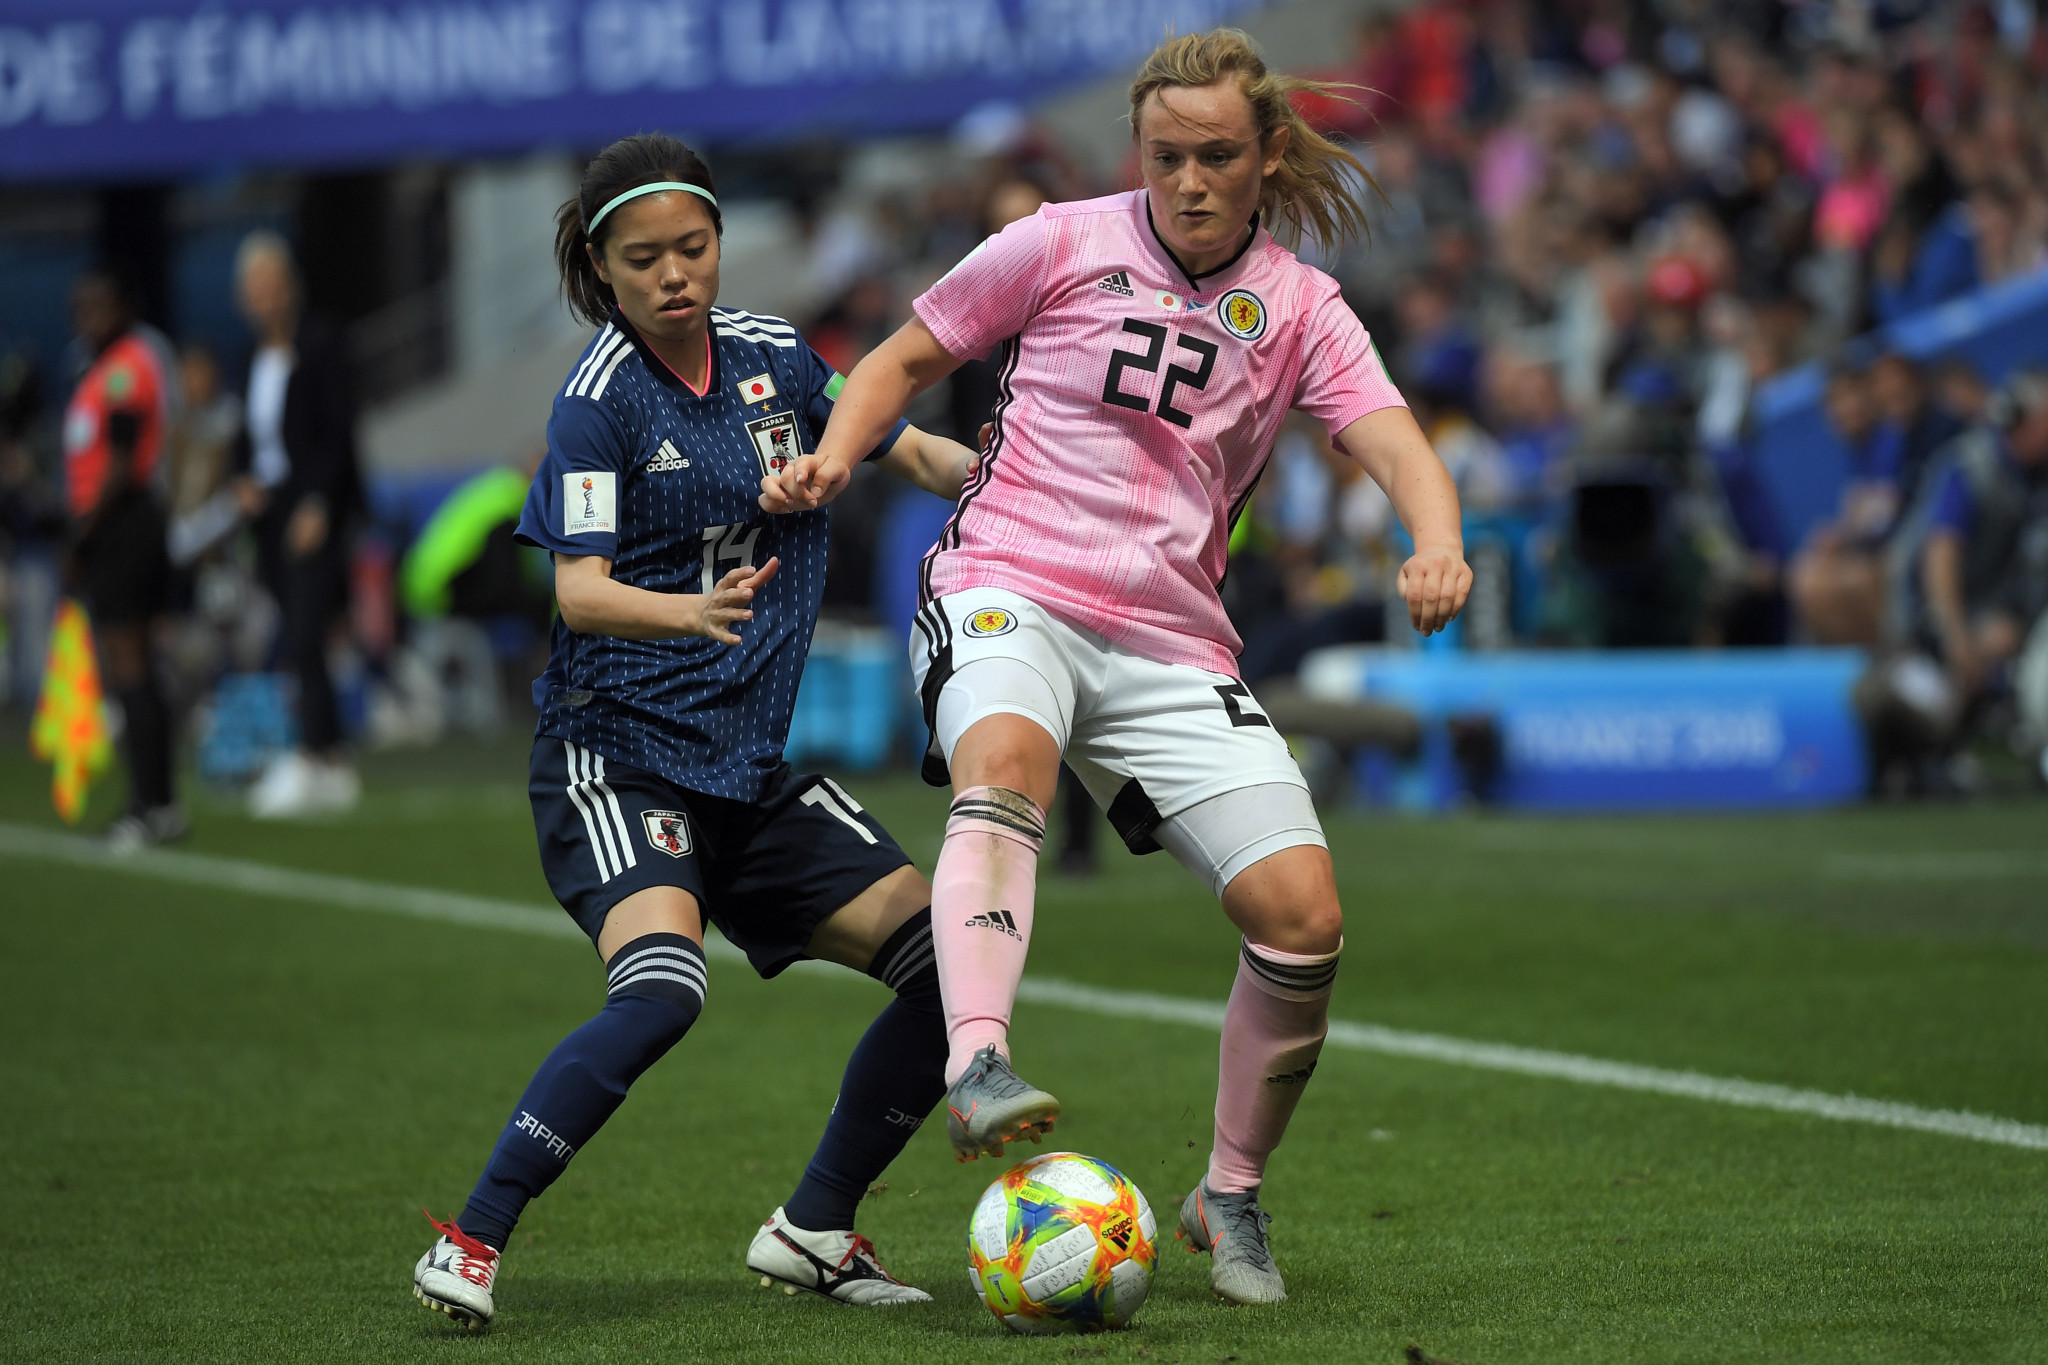 Japan midfielder Yui Hasegawa, left, battles for possession with Scottish forward Erin Cuthbert ©Getty Images